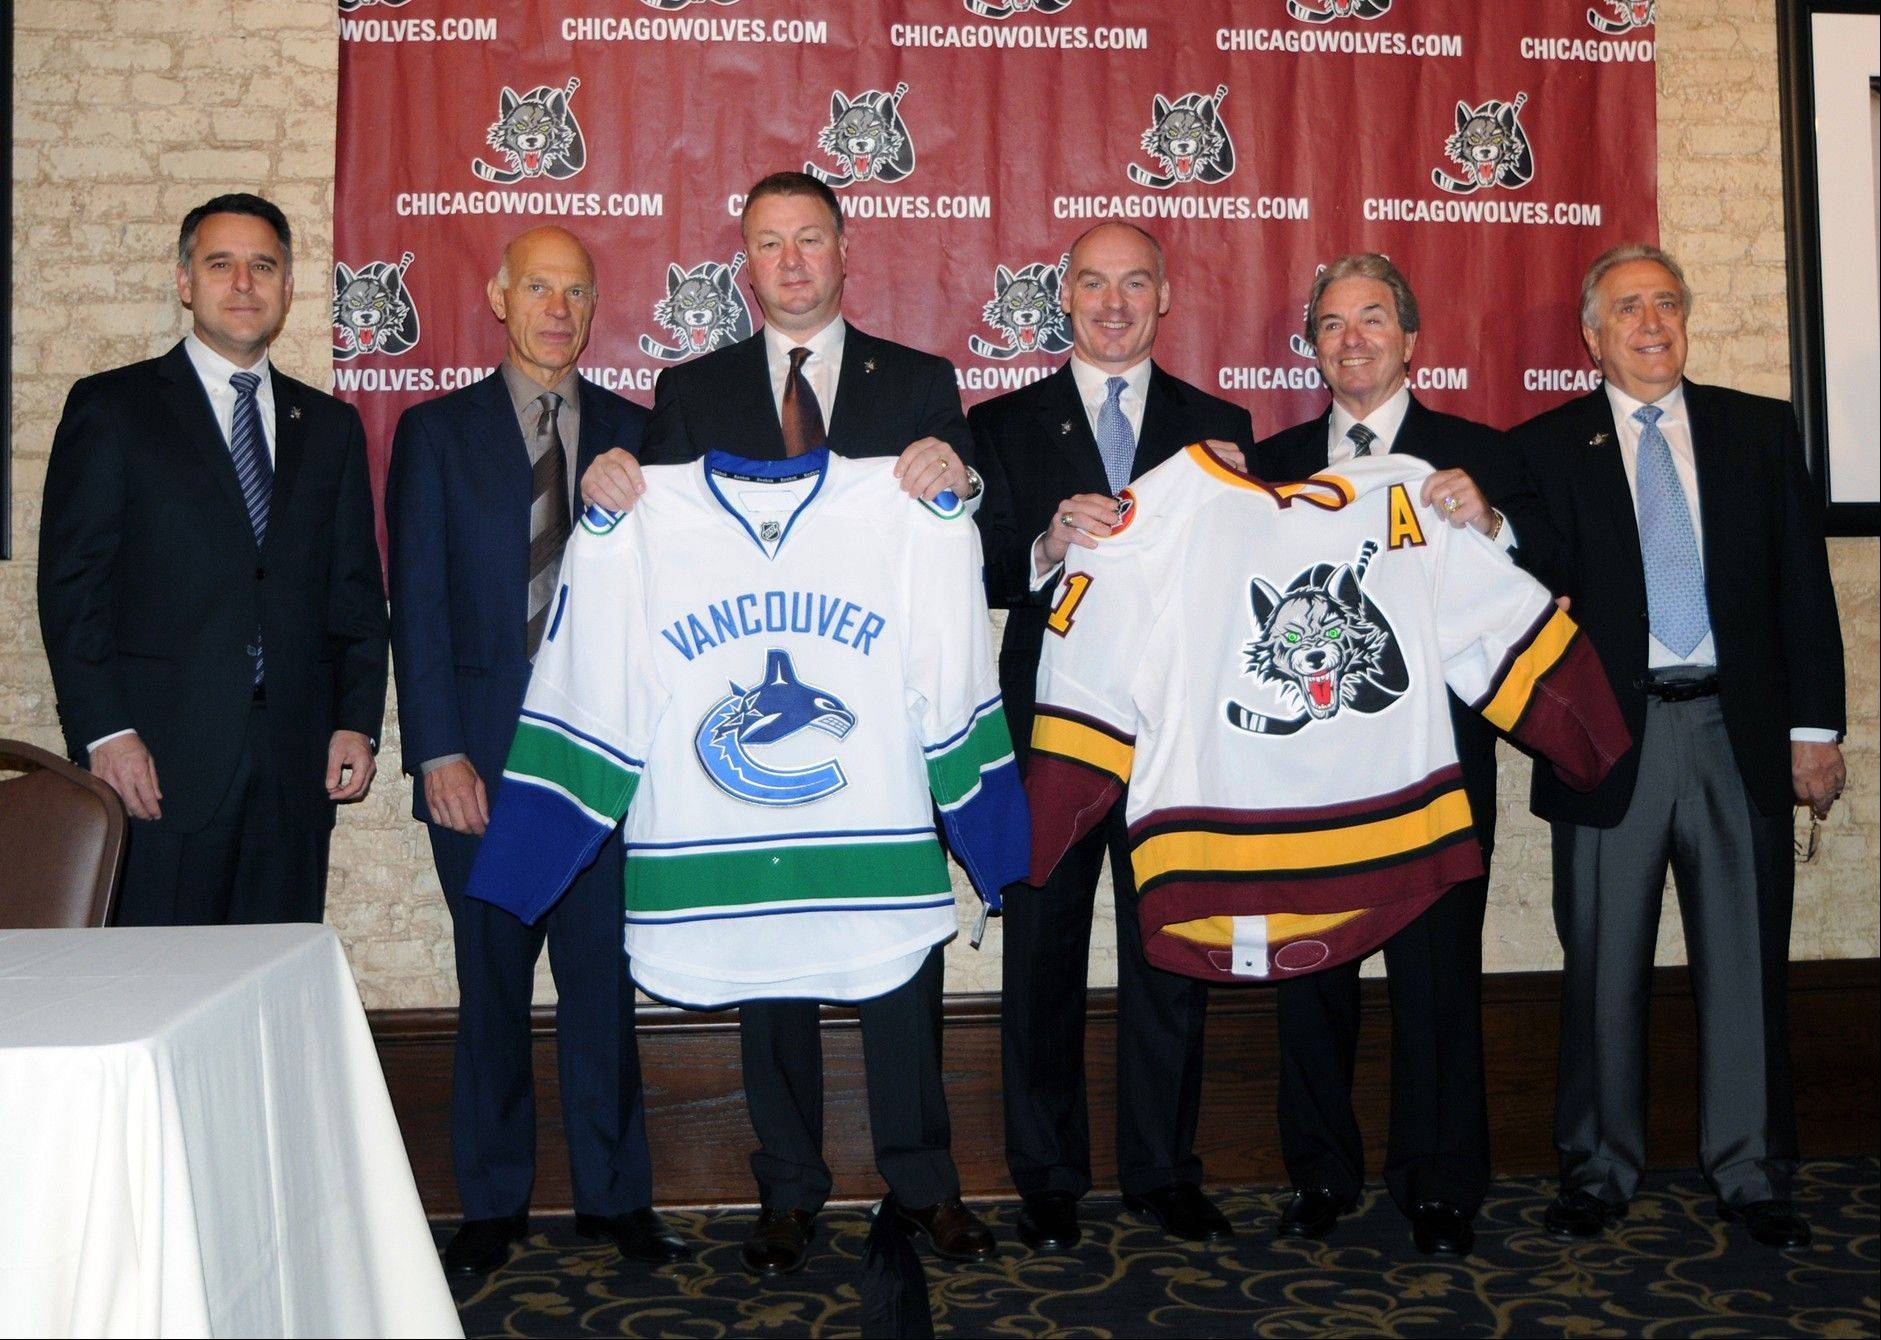 The new partnership between the Chicago Wolves and Vancouver Canucks includes, from left, Vancouver vice president of hockey operations Laurence Gilman, Vancouver vice president of player personnel Lorne Henning, Vancouver president and general manager Mike Gillis, Wolves general manager Wendell Young, Wolves vice chairman Buddy Meyers, Wolves senior advisor and director of hockey pperations Gene Ubriaco.